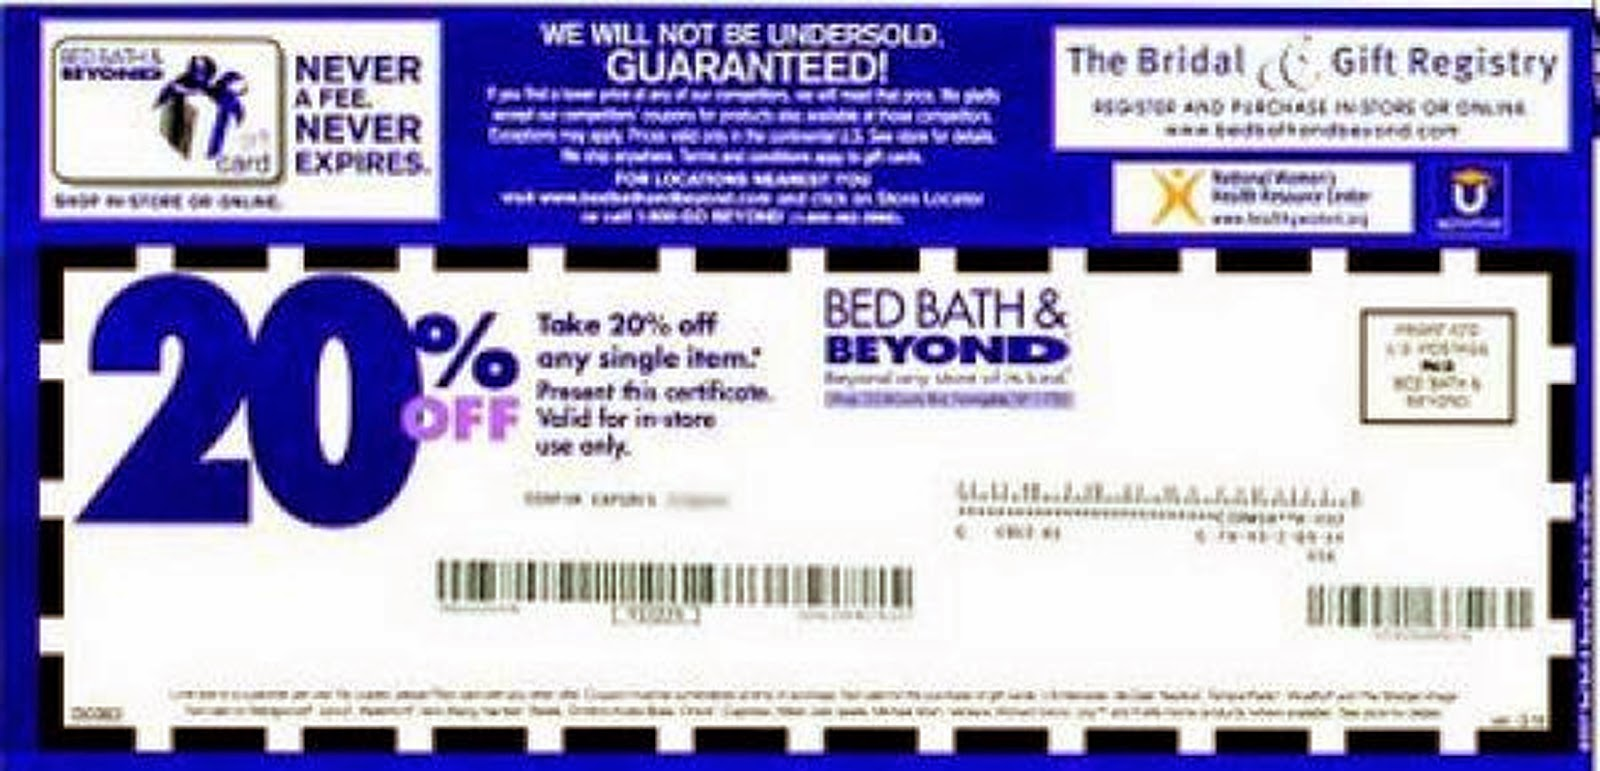 ... coupons to get a percentage of 20 when joining in their list of mails